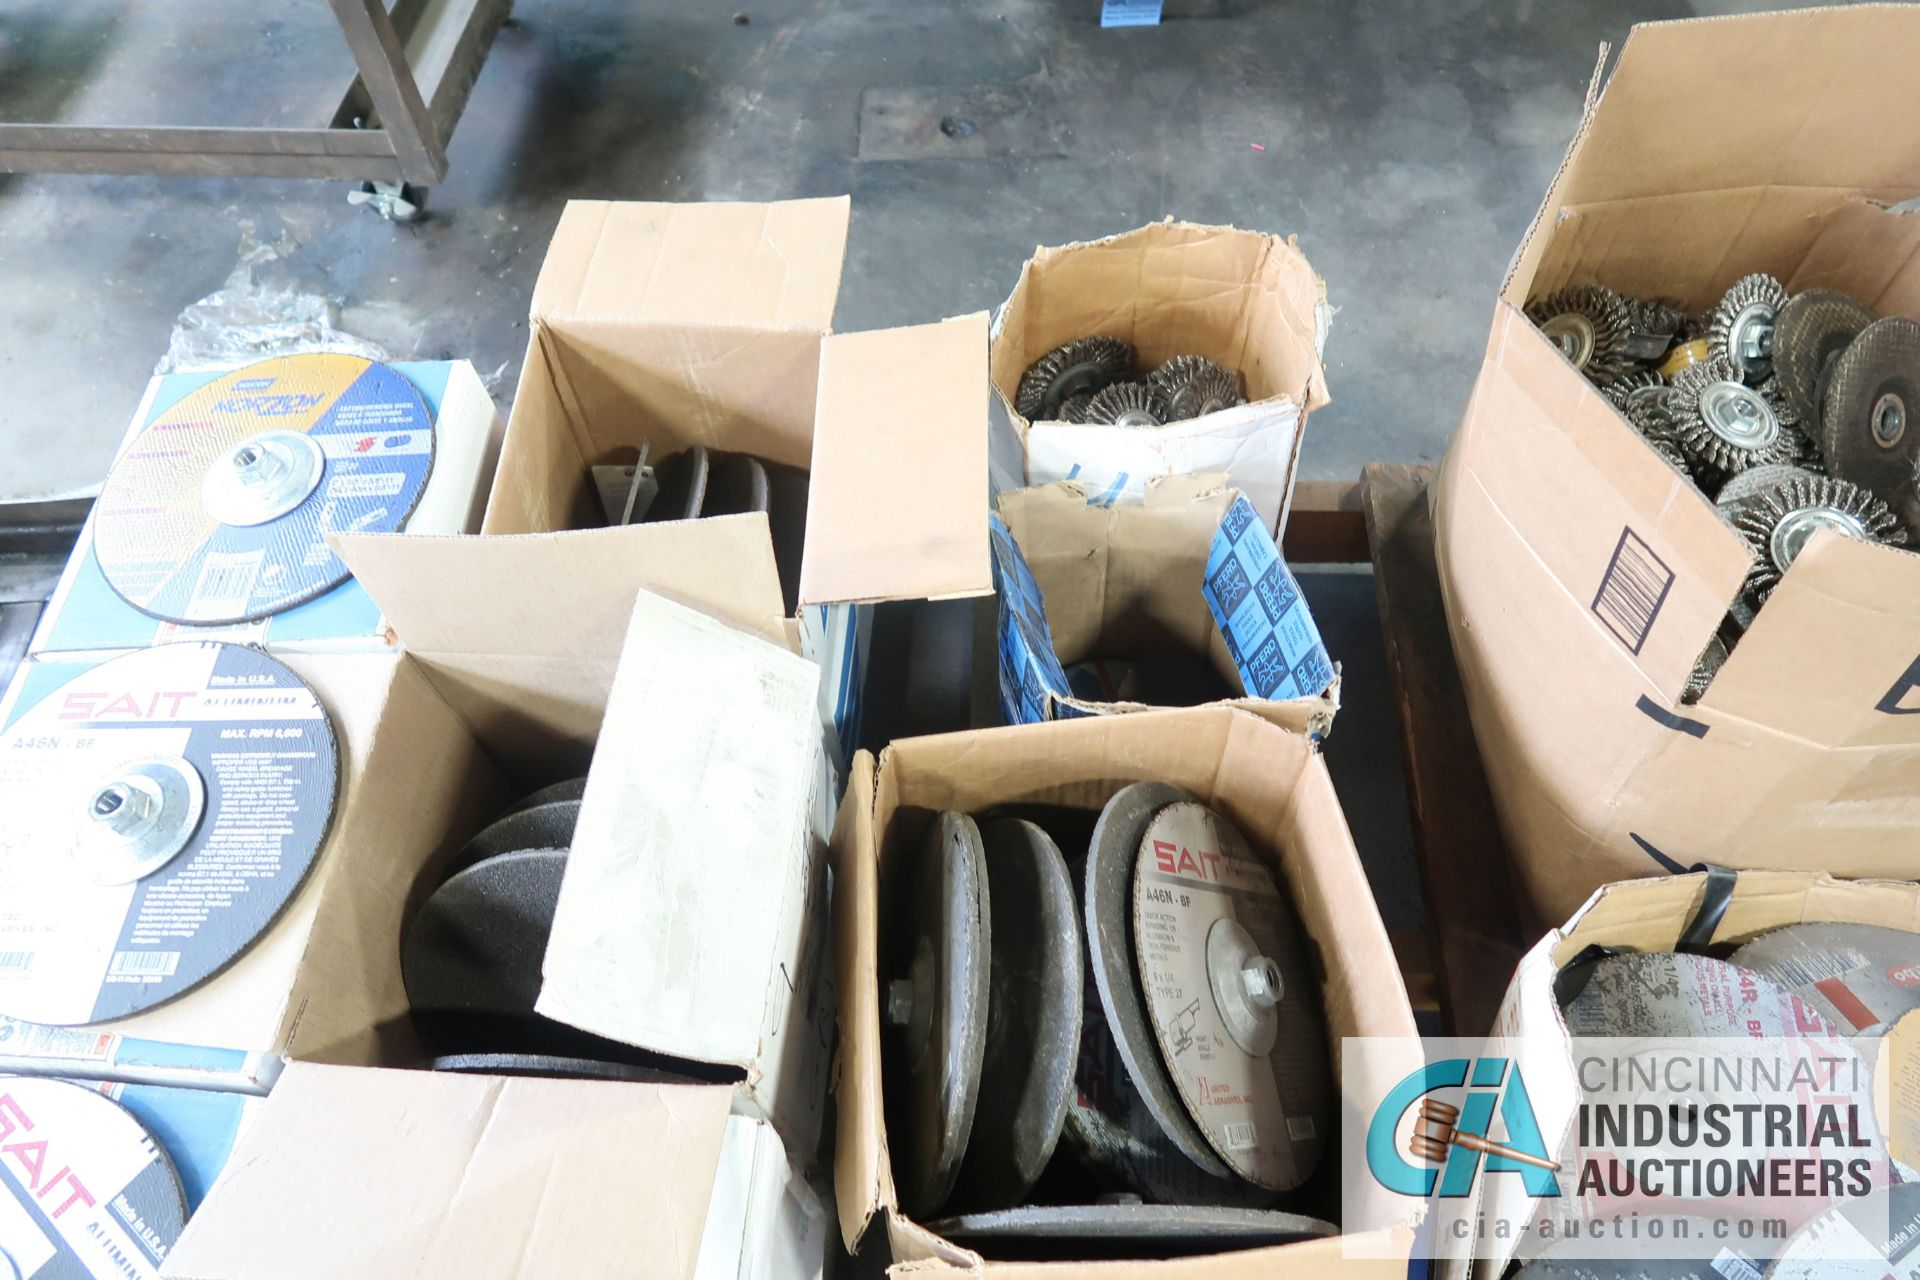 """SKID MISCELLANEOUS NEW AND USED 9"""" AND 6"""" ABRASIVE GRINDING WHEELS WITH 4"""" WIRE WHEELS - Image 4 of 5"""